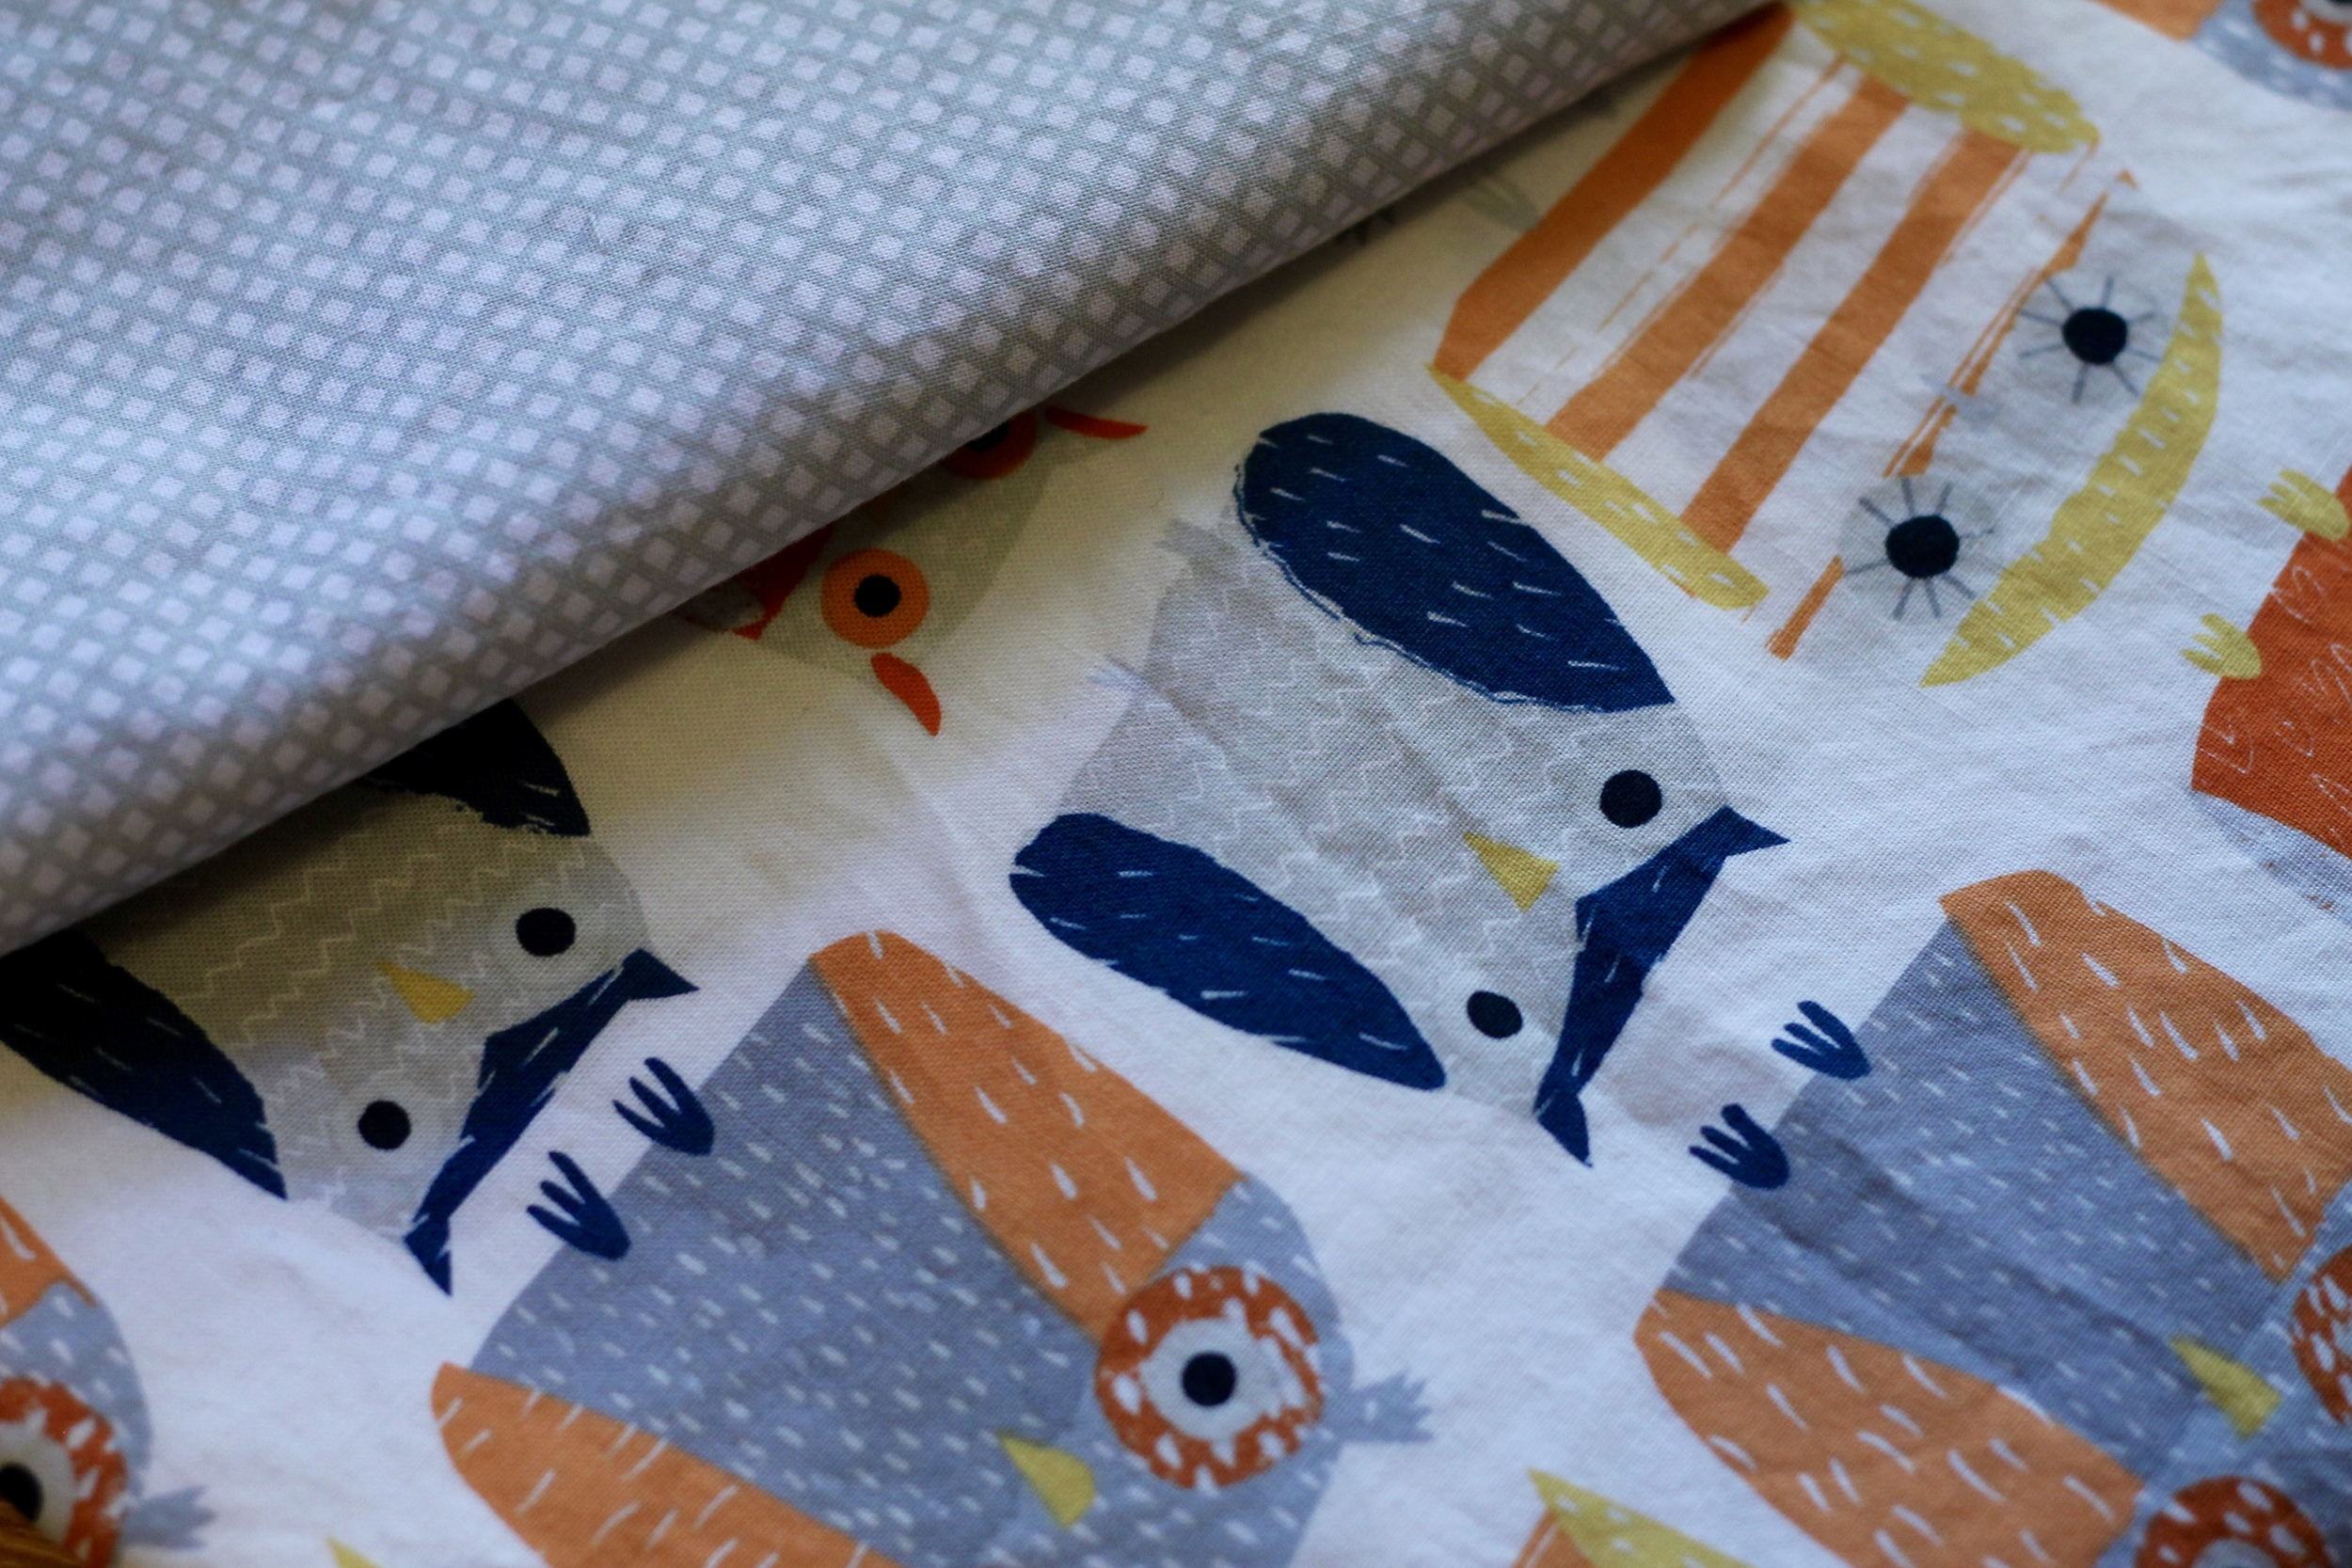 Coordinating fabric (Cotton and Steel) came from our local quilting shop, Calico Gals.